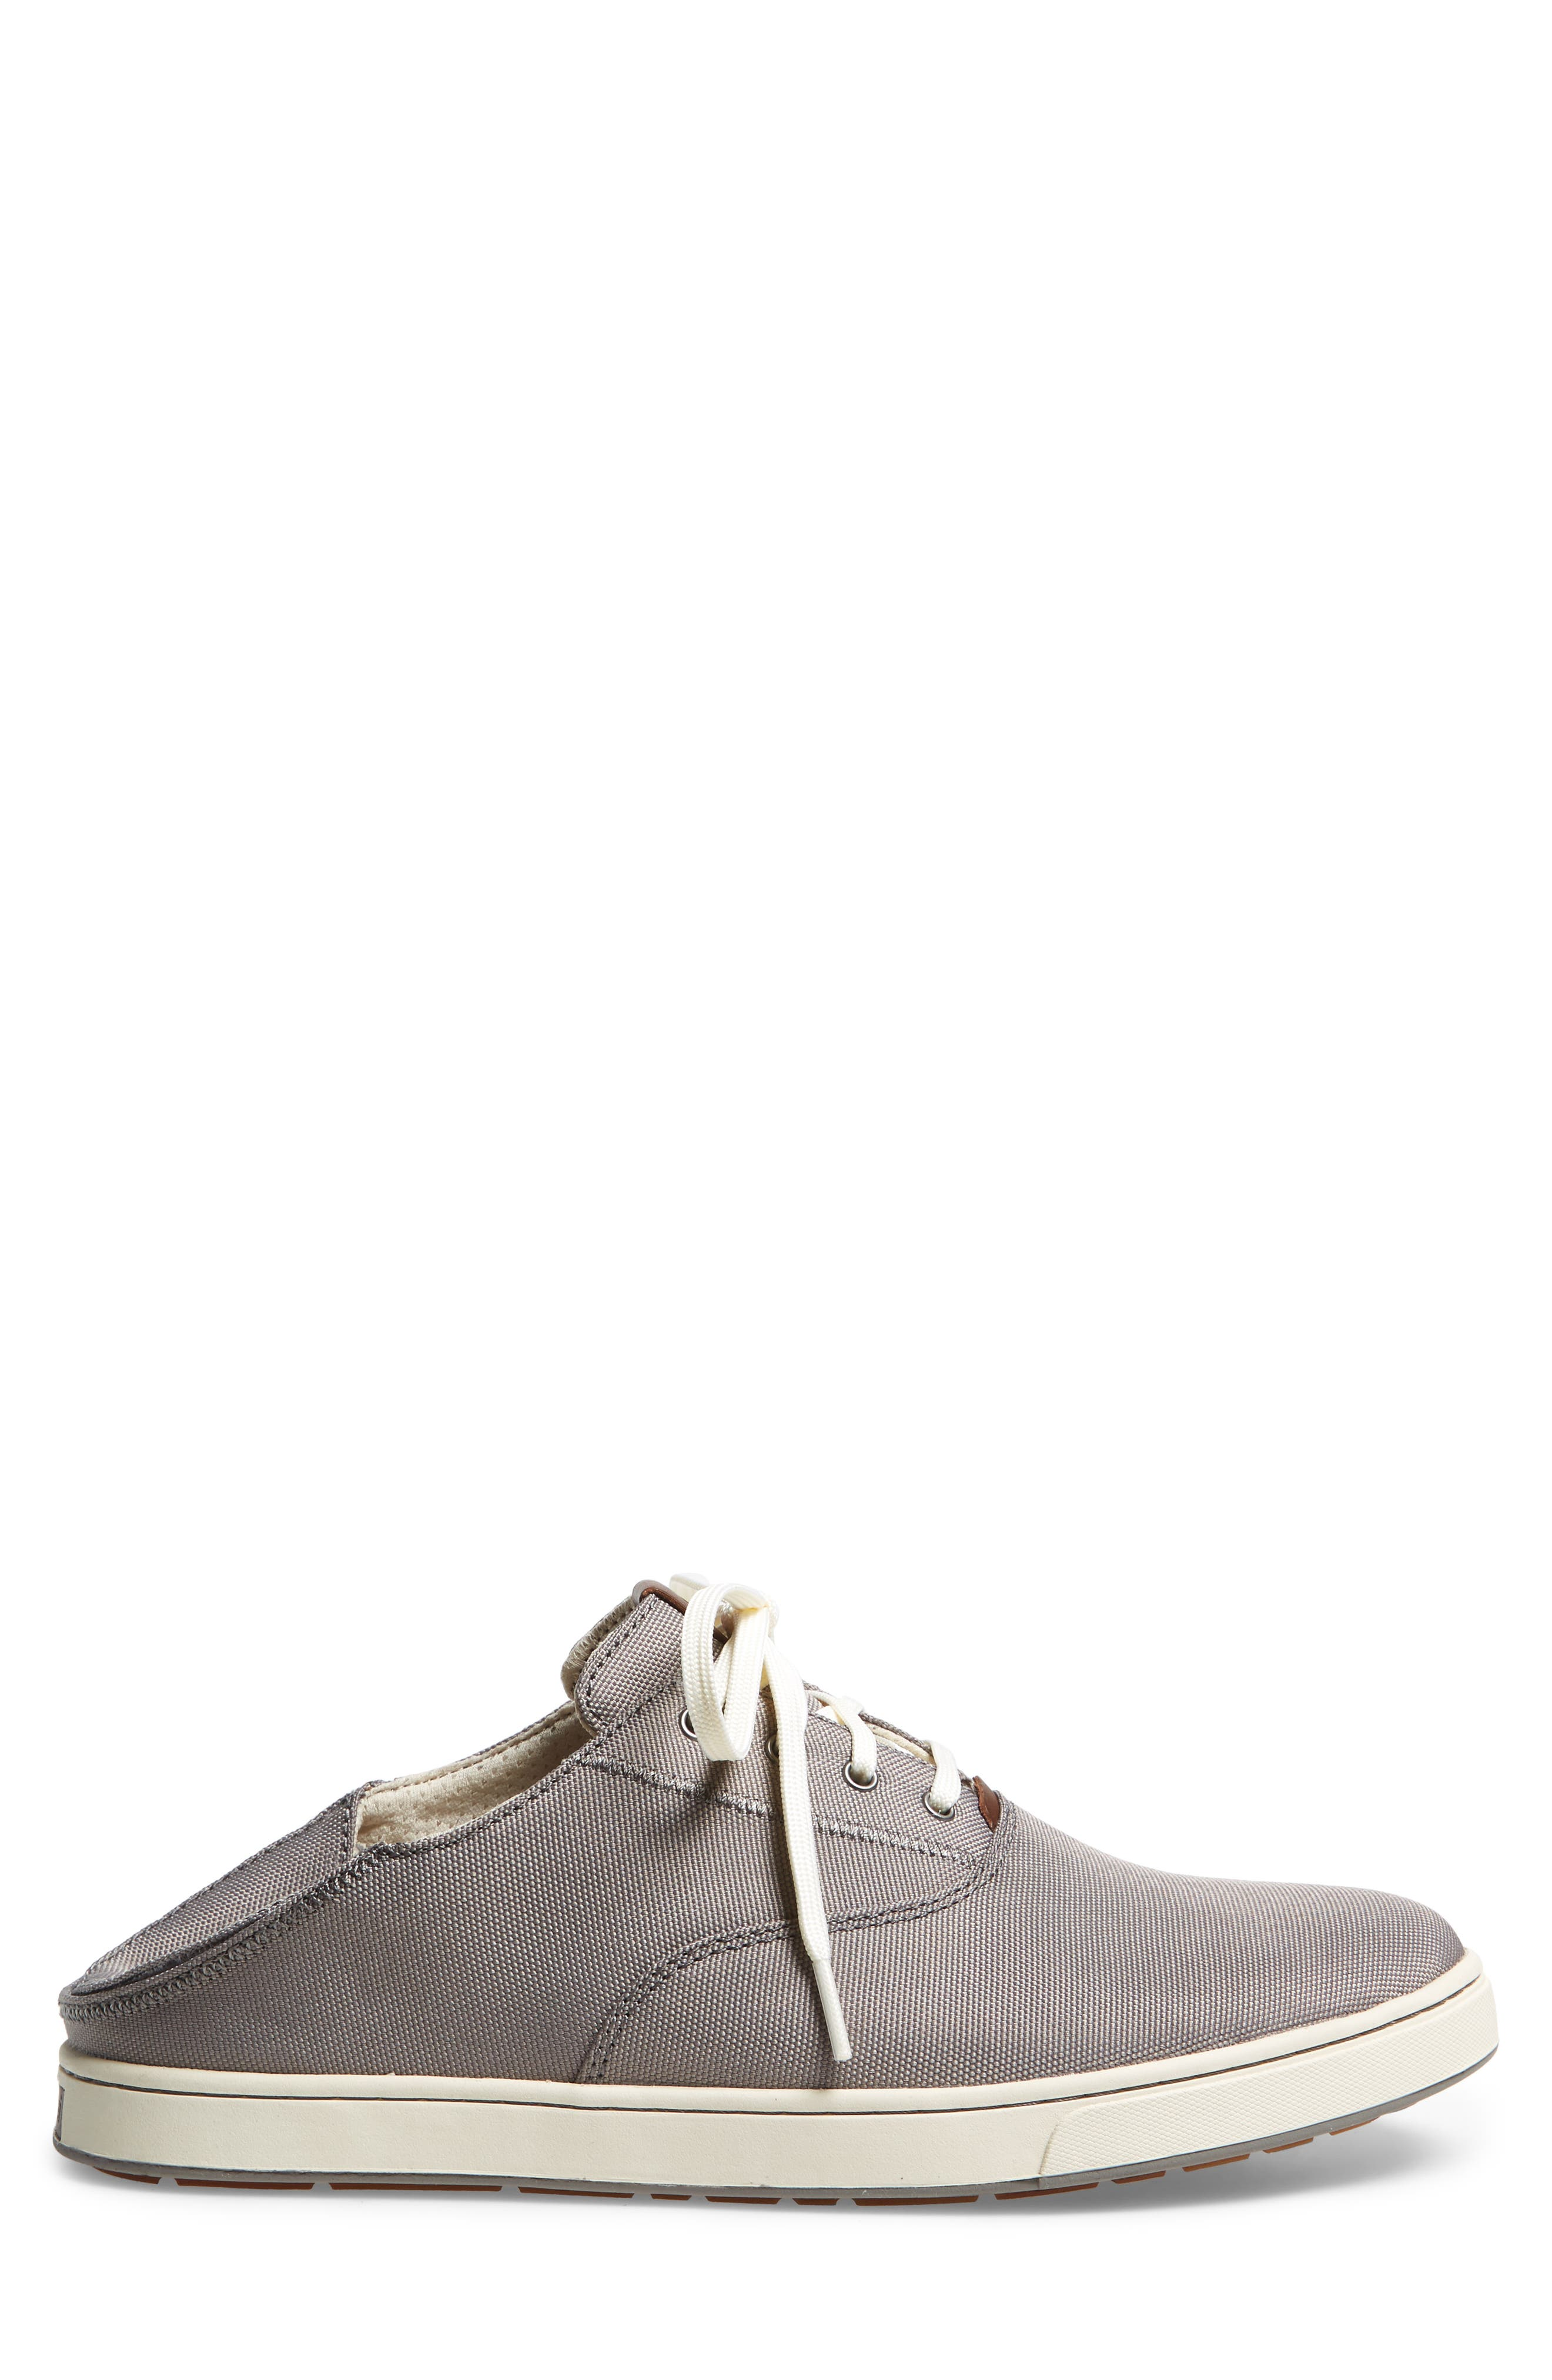 Kahu Collapsible Lace-Up Sneaker,                             Alternate thumbnail 3, color,                             Fog/ Off White